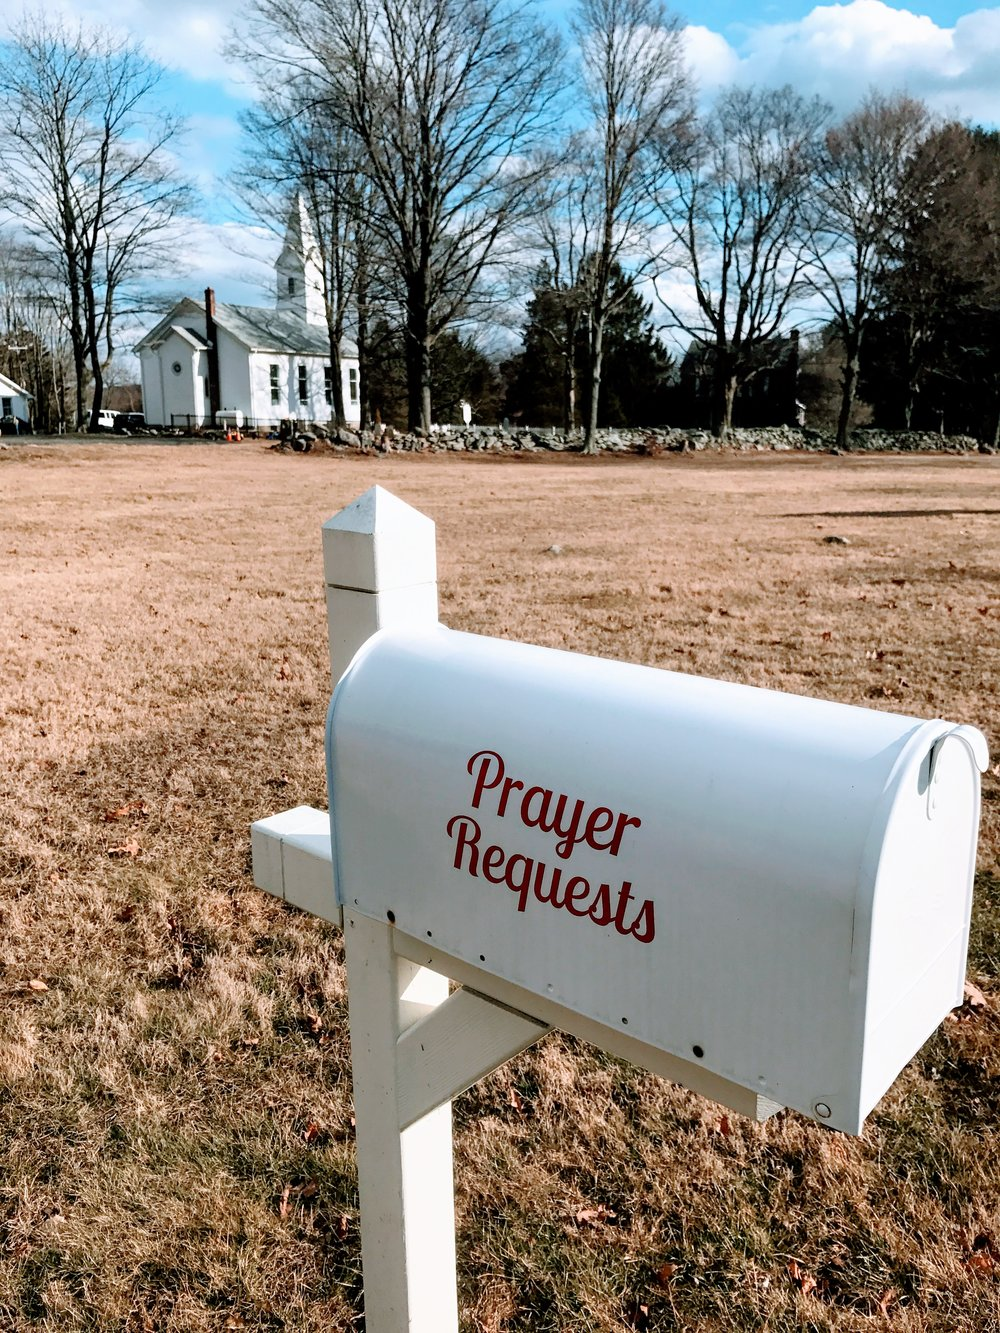 Drop off your prayers. No stamp required.